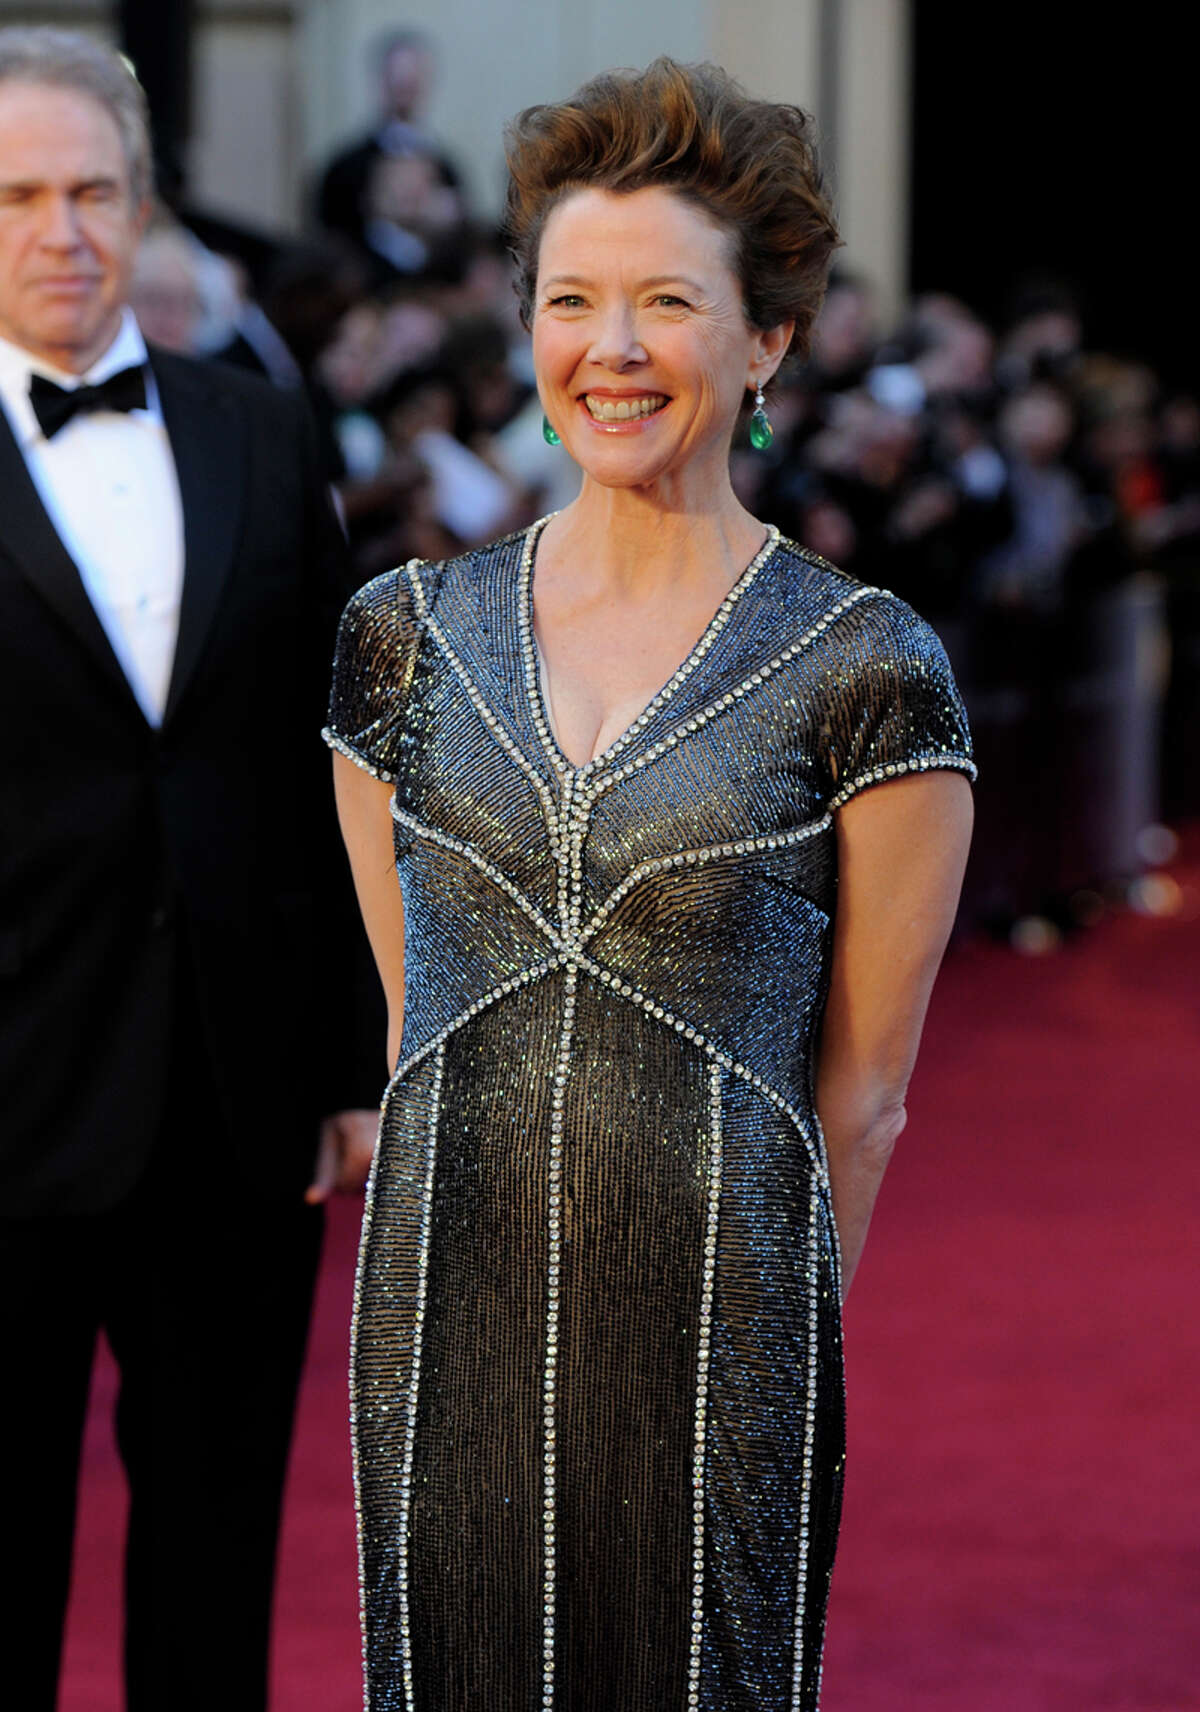 Annette Bening, aka Sparkle Frumpy. Commentary by the Houston Chronicle's Kyrie O'Connor of the MeMo blog. Photo by the Associated Press.